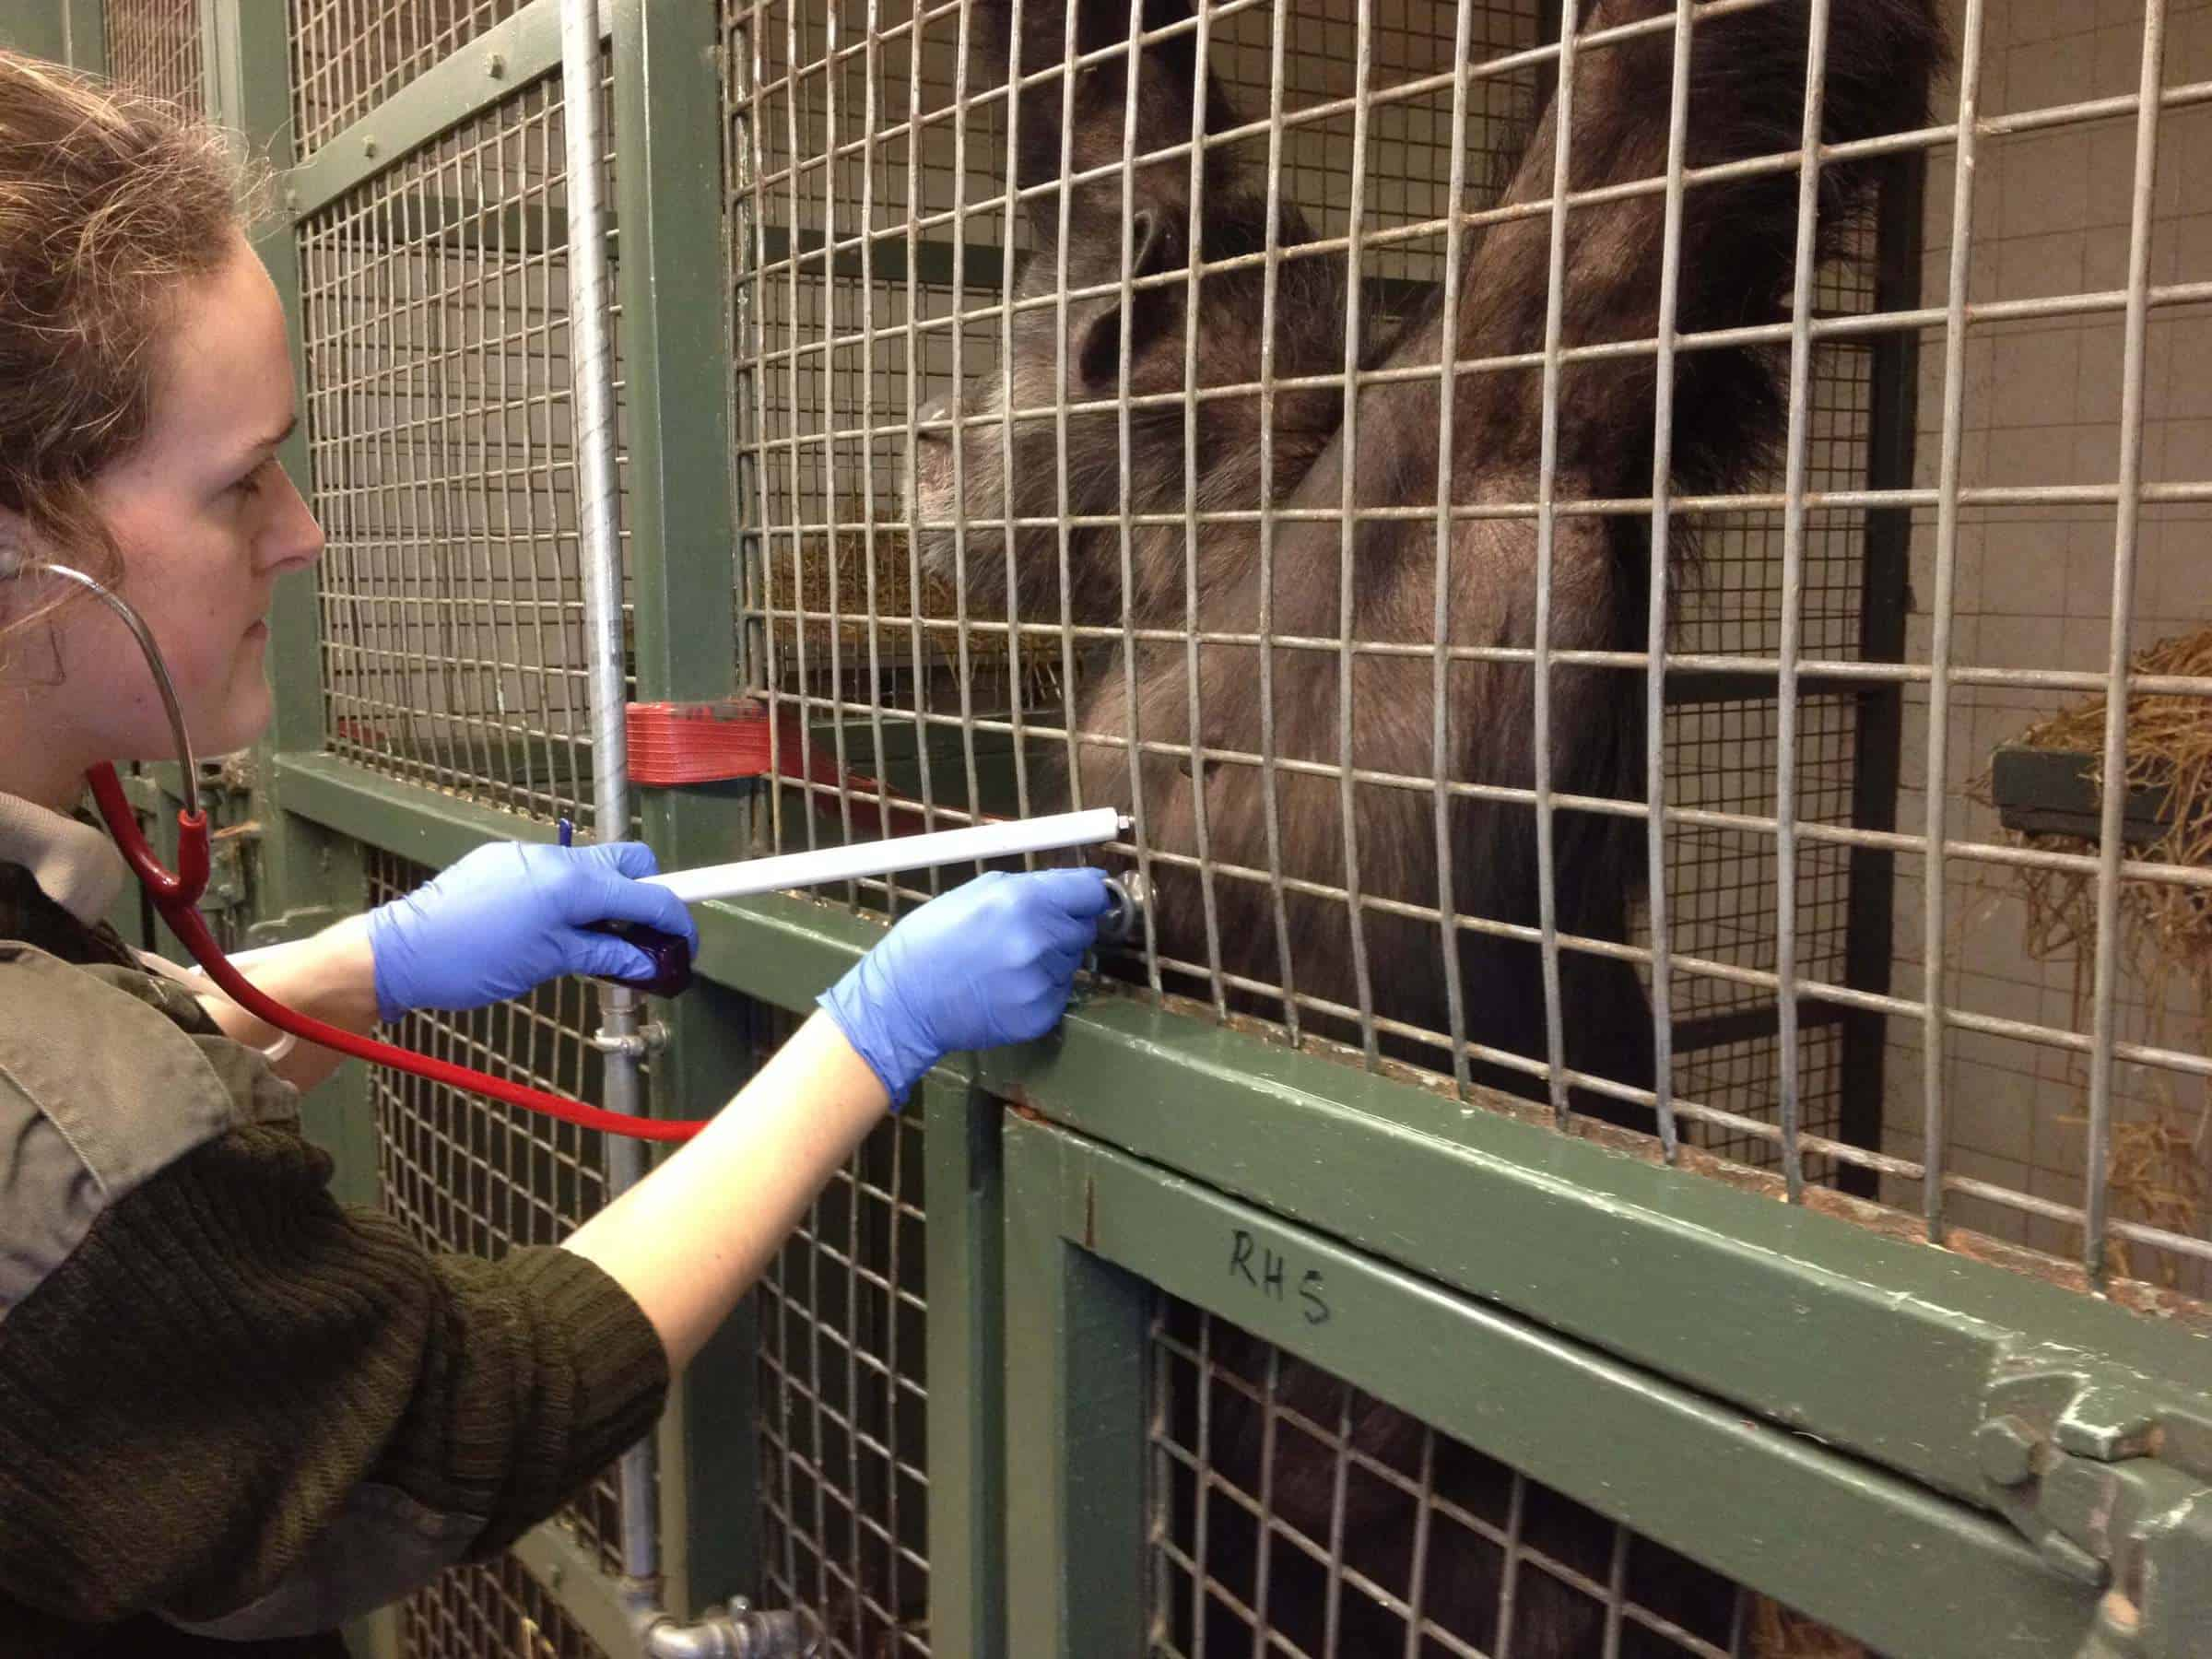 Twycross-Zoo-chimpanzee-Choppers-presents-her-chest-to-veterinary-staff-so-they-can-listen-to-her-heart_credit-Twycross-Zoo